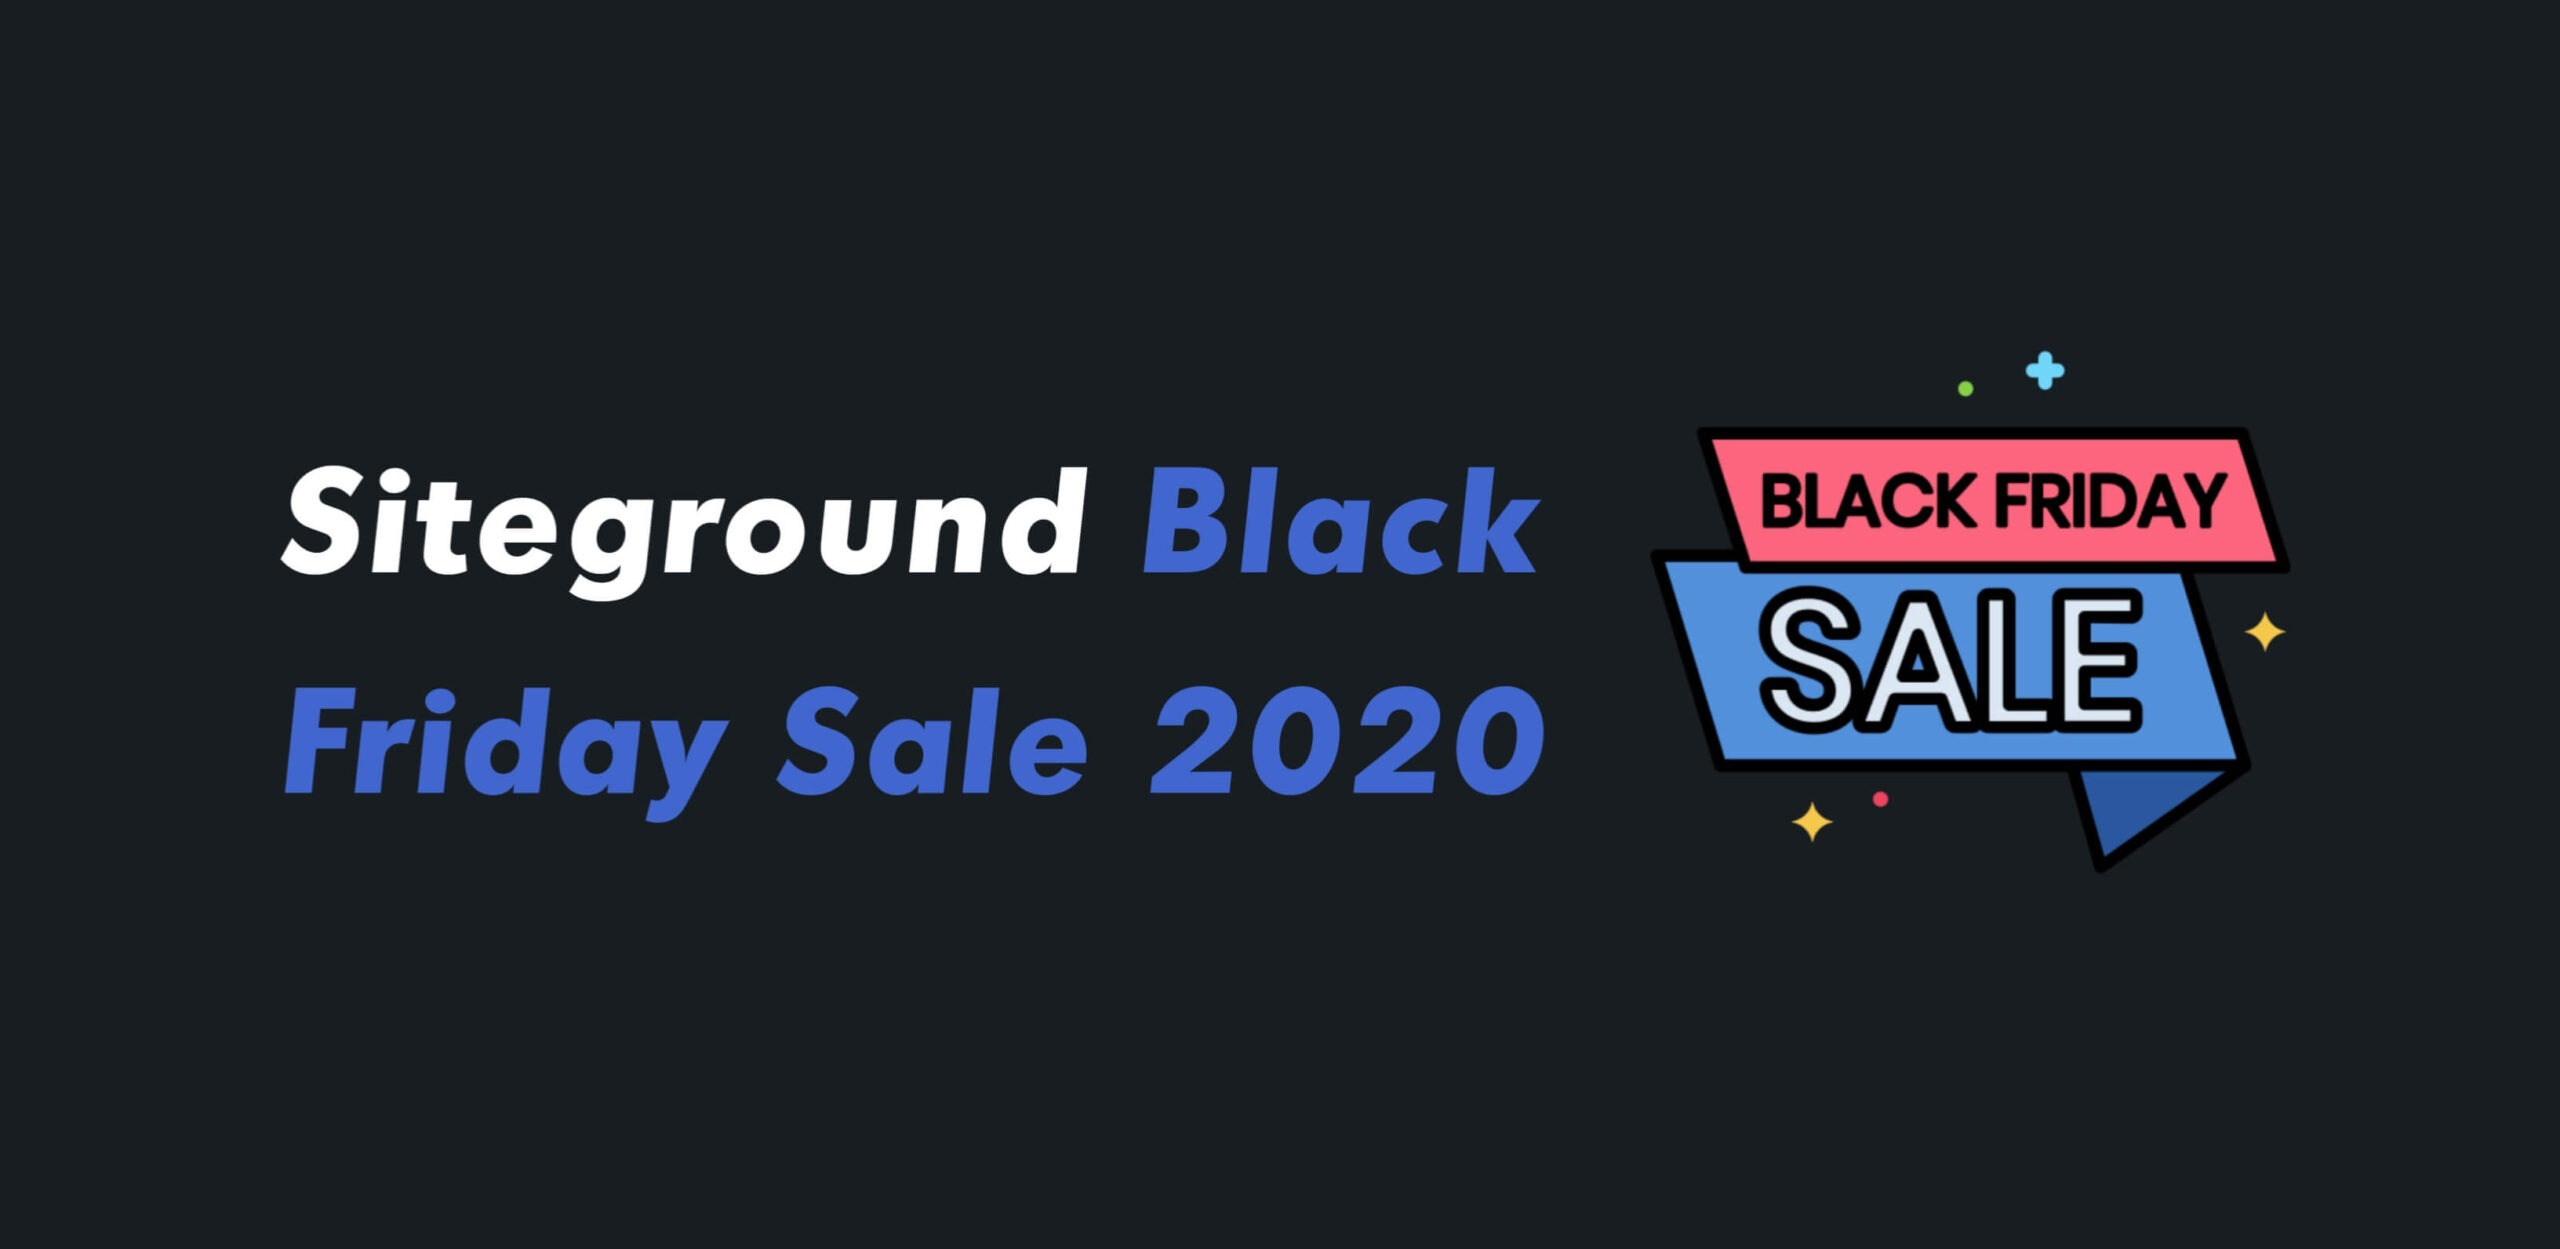 SiteGround Black Friday Cyber Monday Sale 2020 - 75% Discount (LIVE NOW)